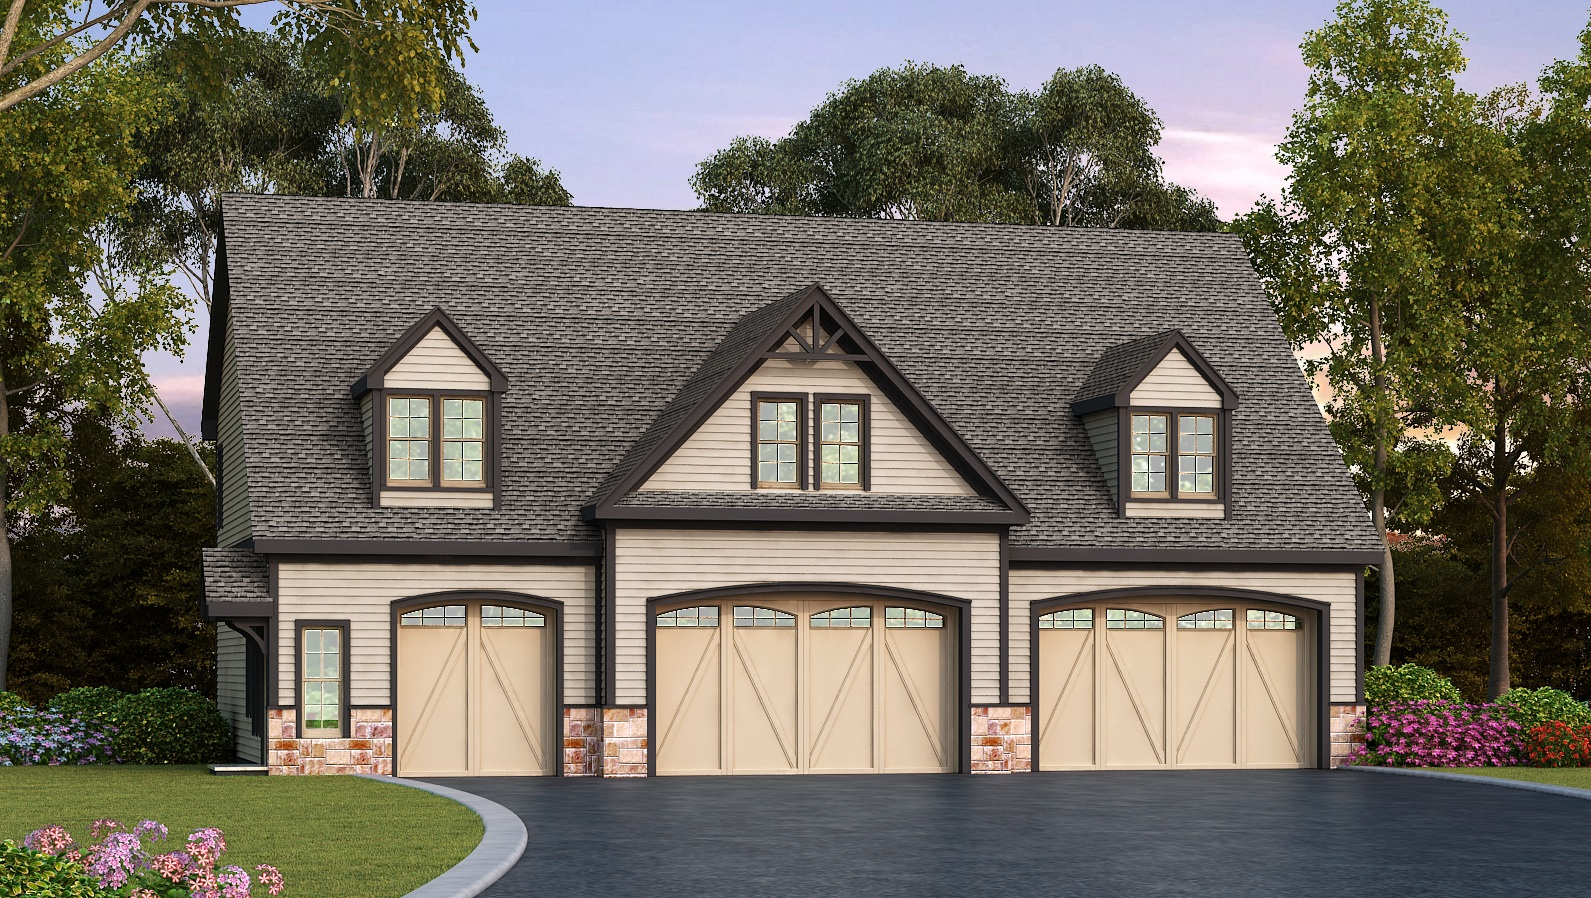 Residential 3 bay garage plan 29870rl 2nd floor master for 2 bay garage plans